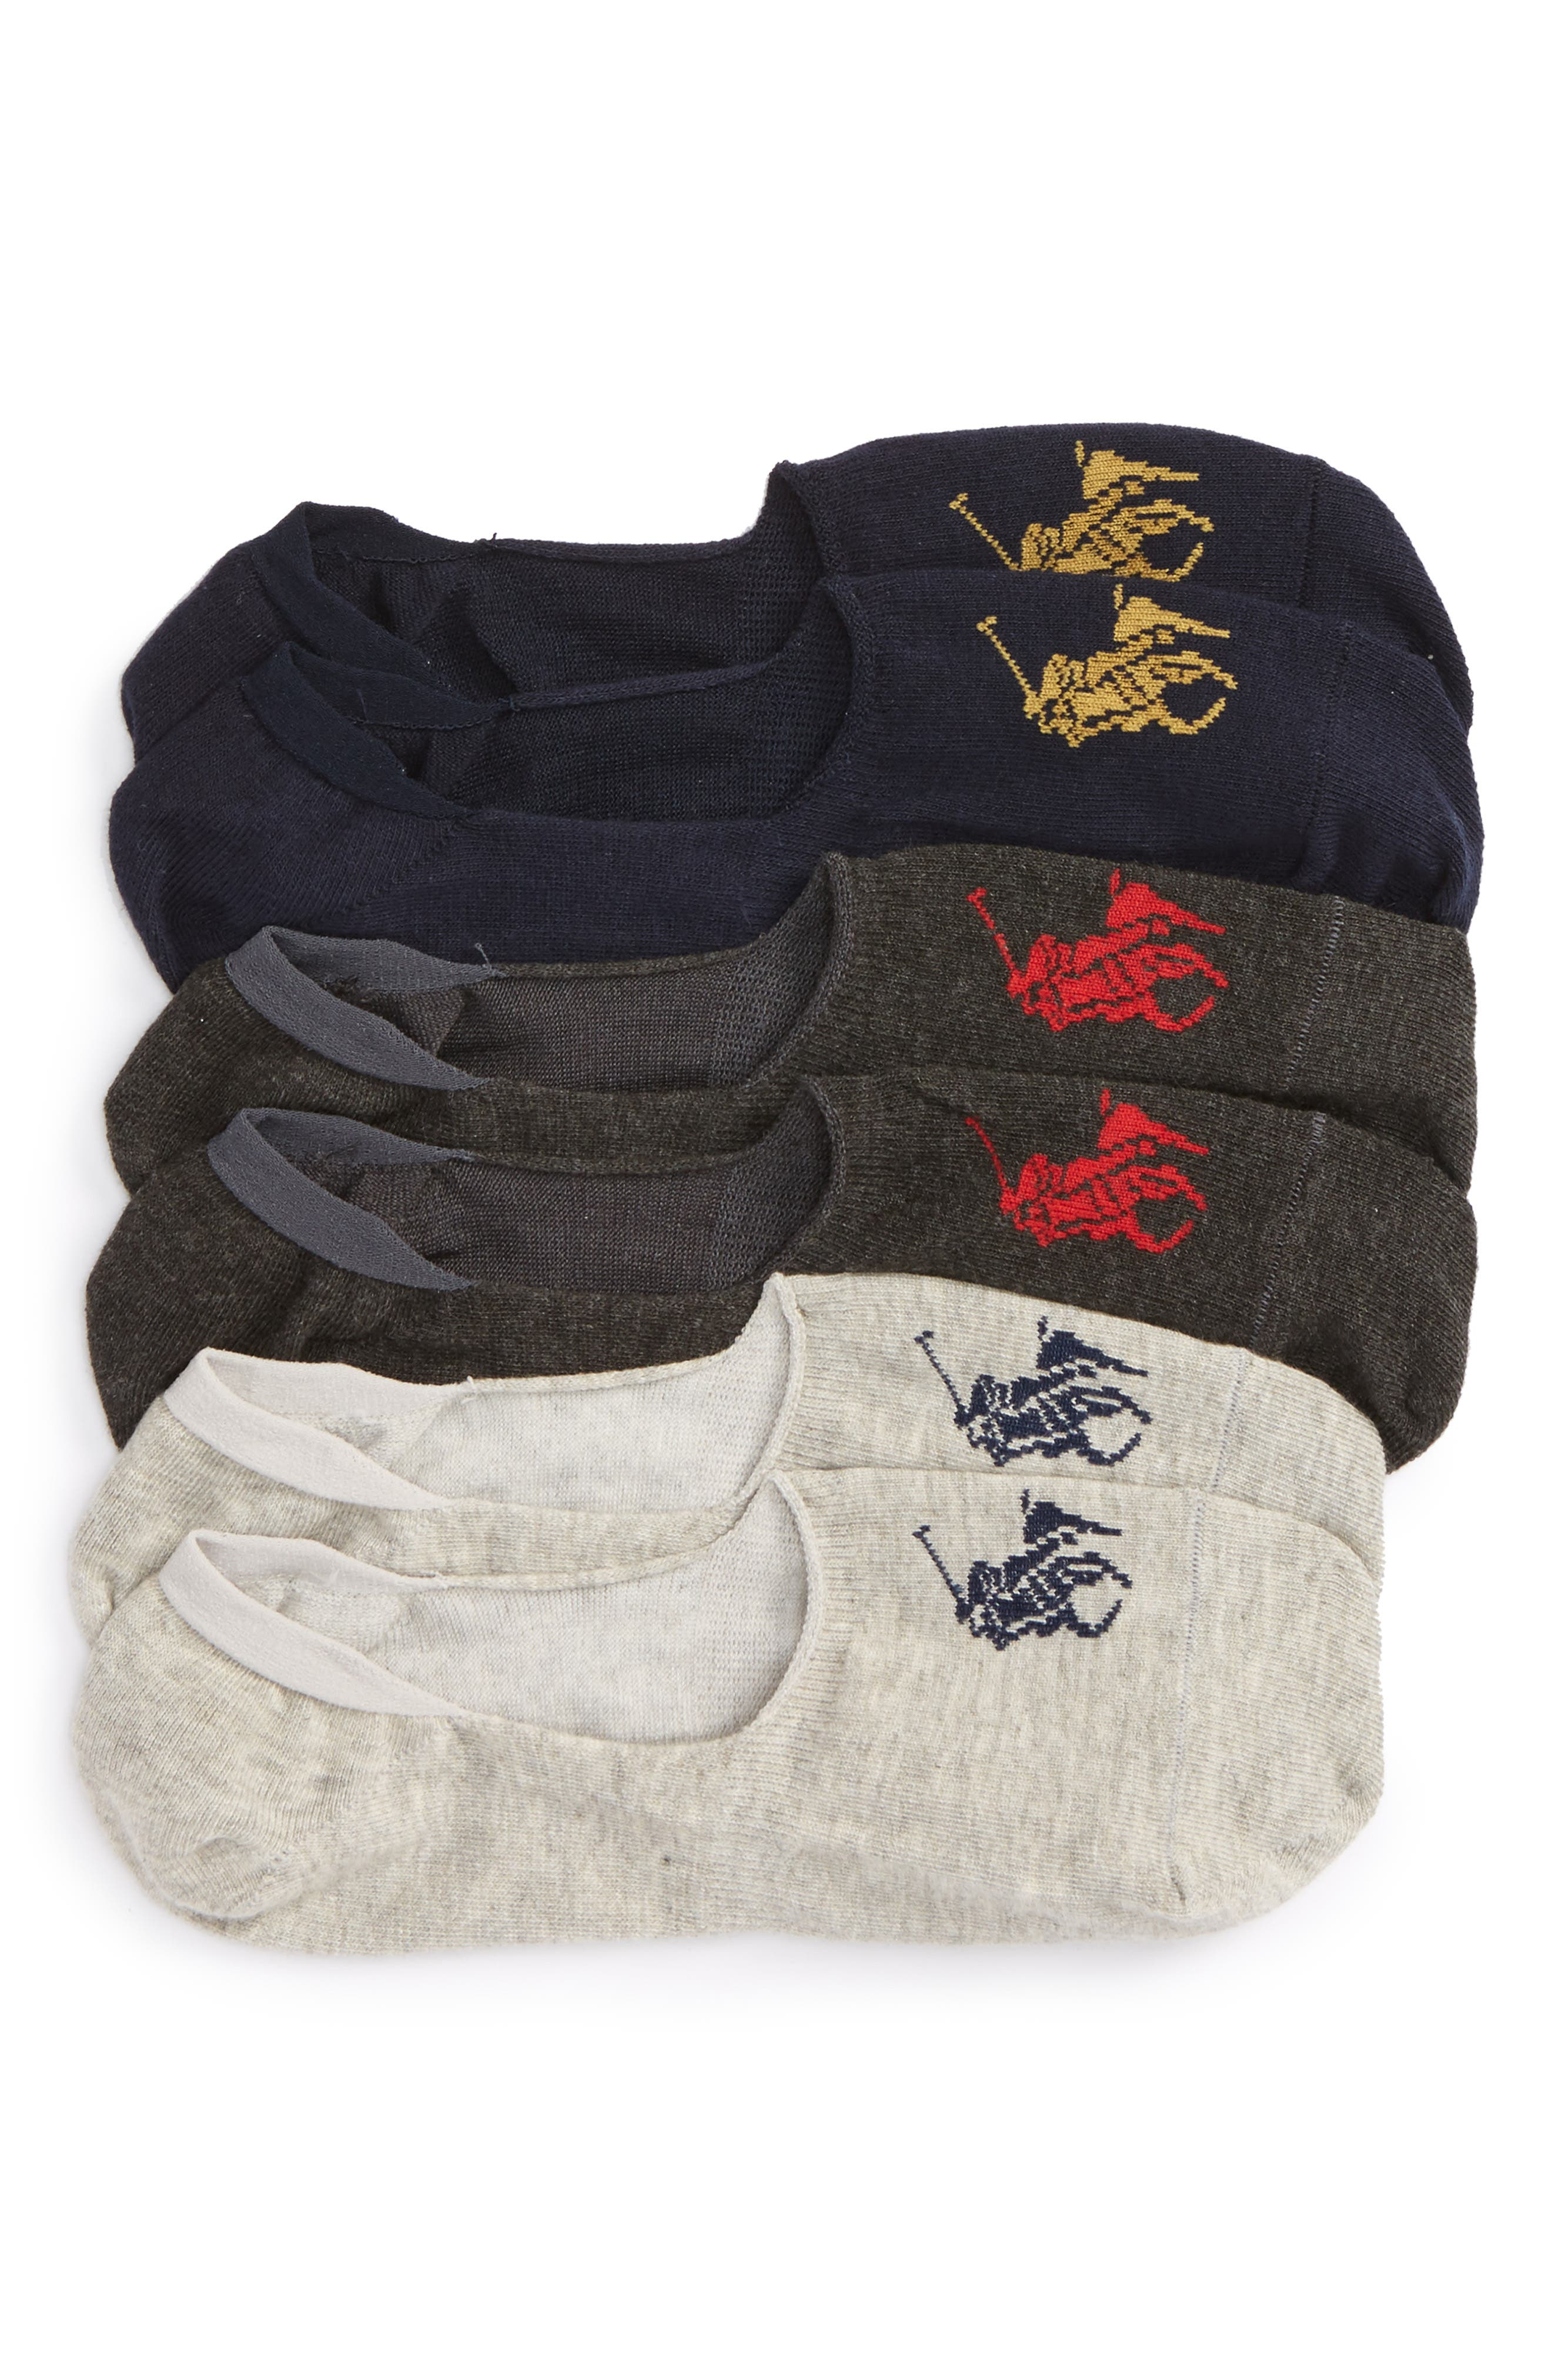 Polo Ralph Lauren Liner Socks (3-Pack) (Men)